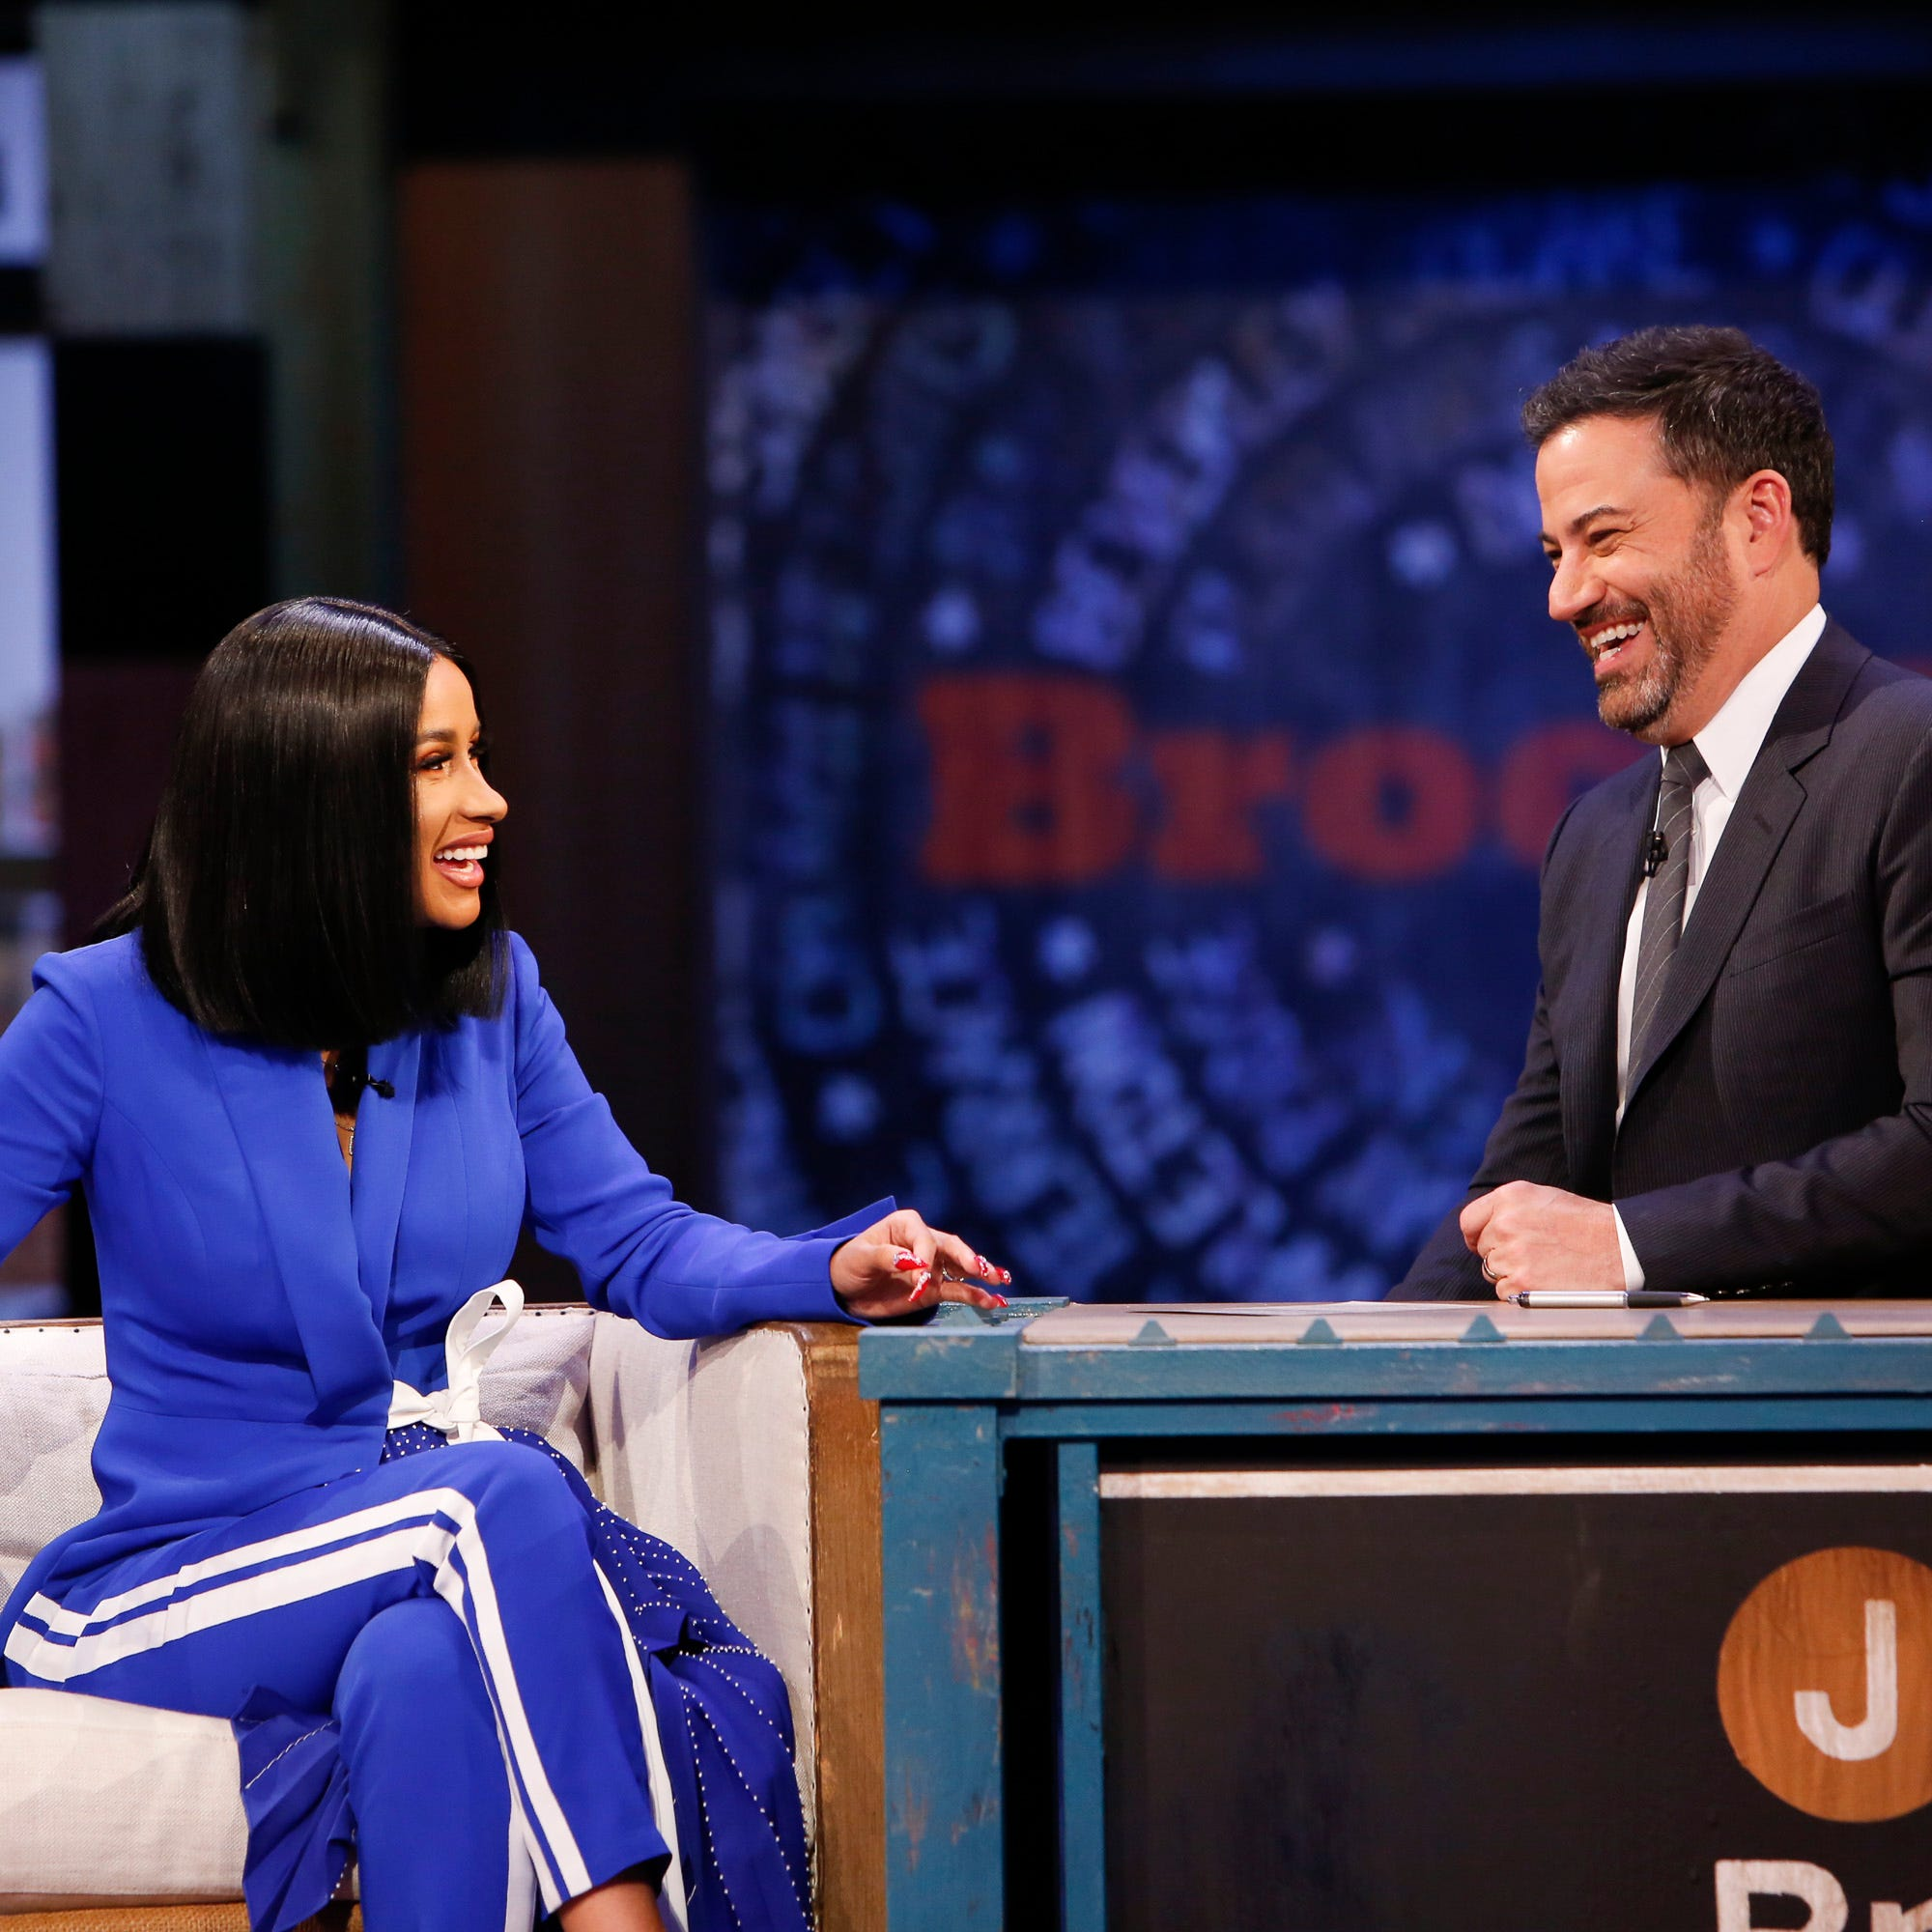 "JIMMY KIMMEL LIVE! - ""Jimmy Kimmel Live!"" airs every weeknight at 11:35 p.m. EDT and features a diverse lineup of guests that include celebrities, athletes, musical acts, comedians and human interest subjects, along with comedy bits and a house band. The guests for Wednesday, October 17 included Cardi B., Alexandria Ocasio-Cortez (congressional hopeful), and musical guest J. Balvin Ft. Zion & Lennox. (ABC/Randy Holmes)